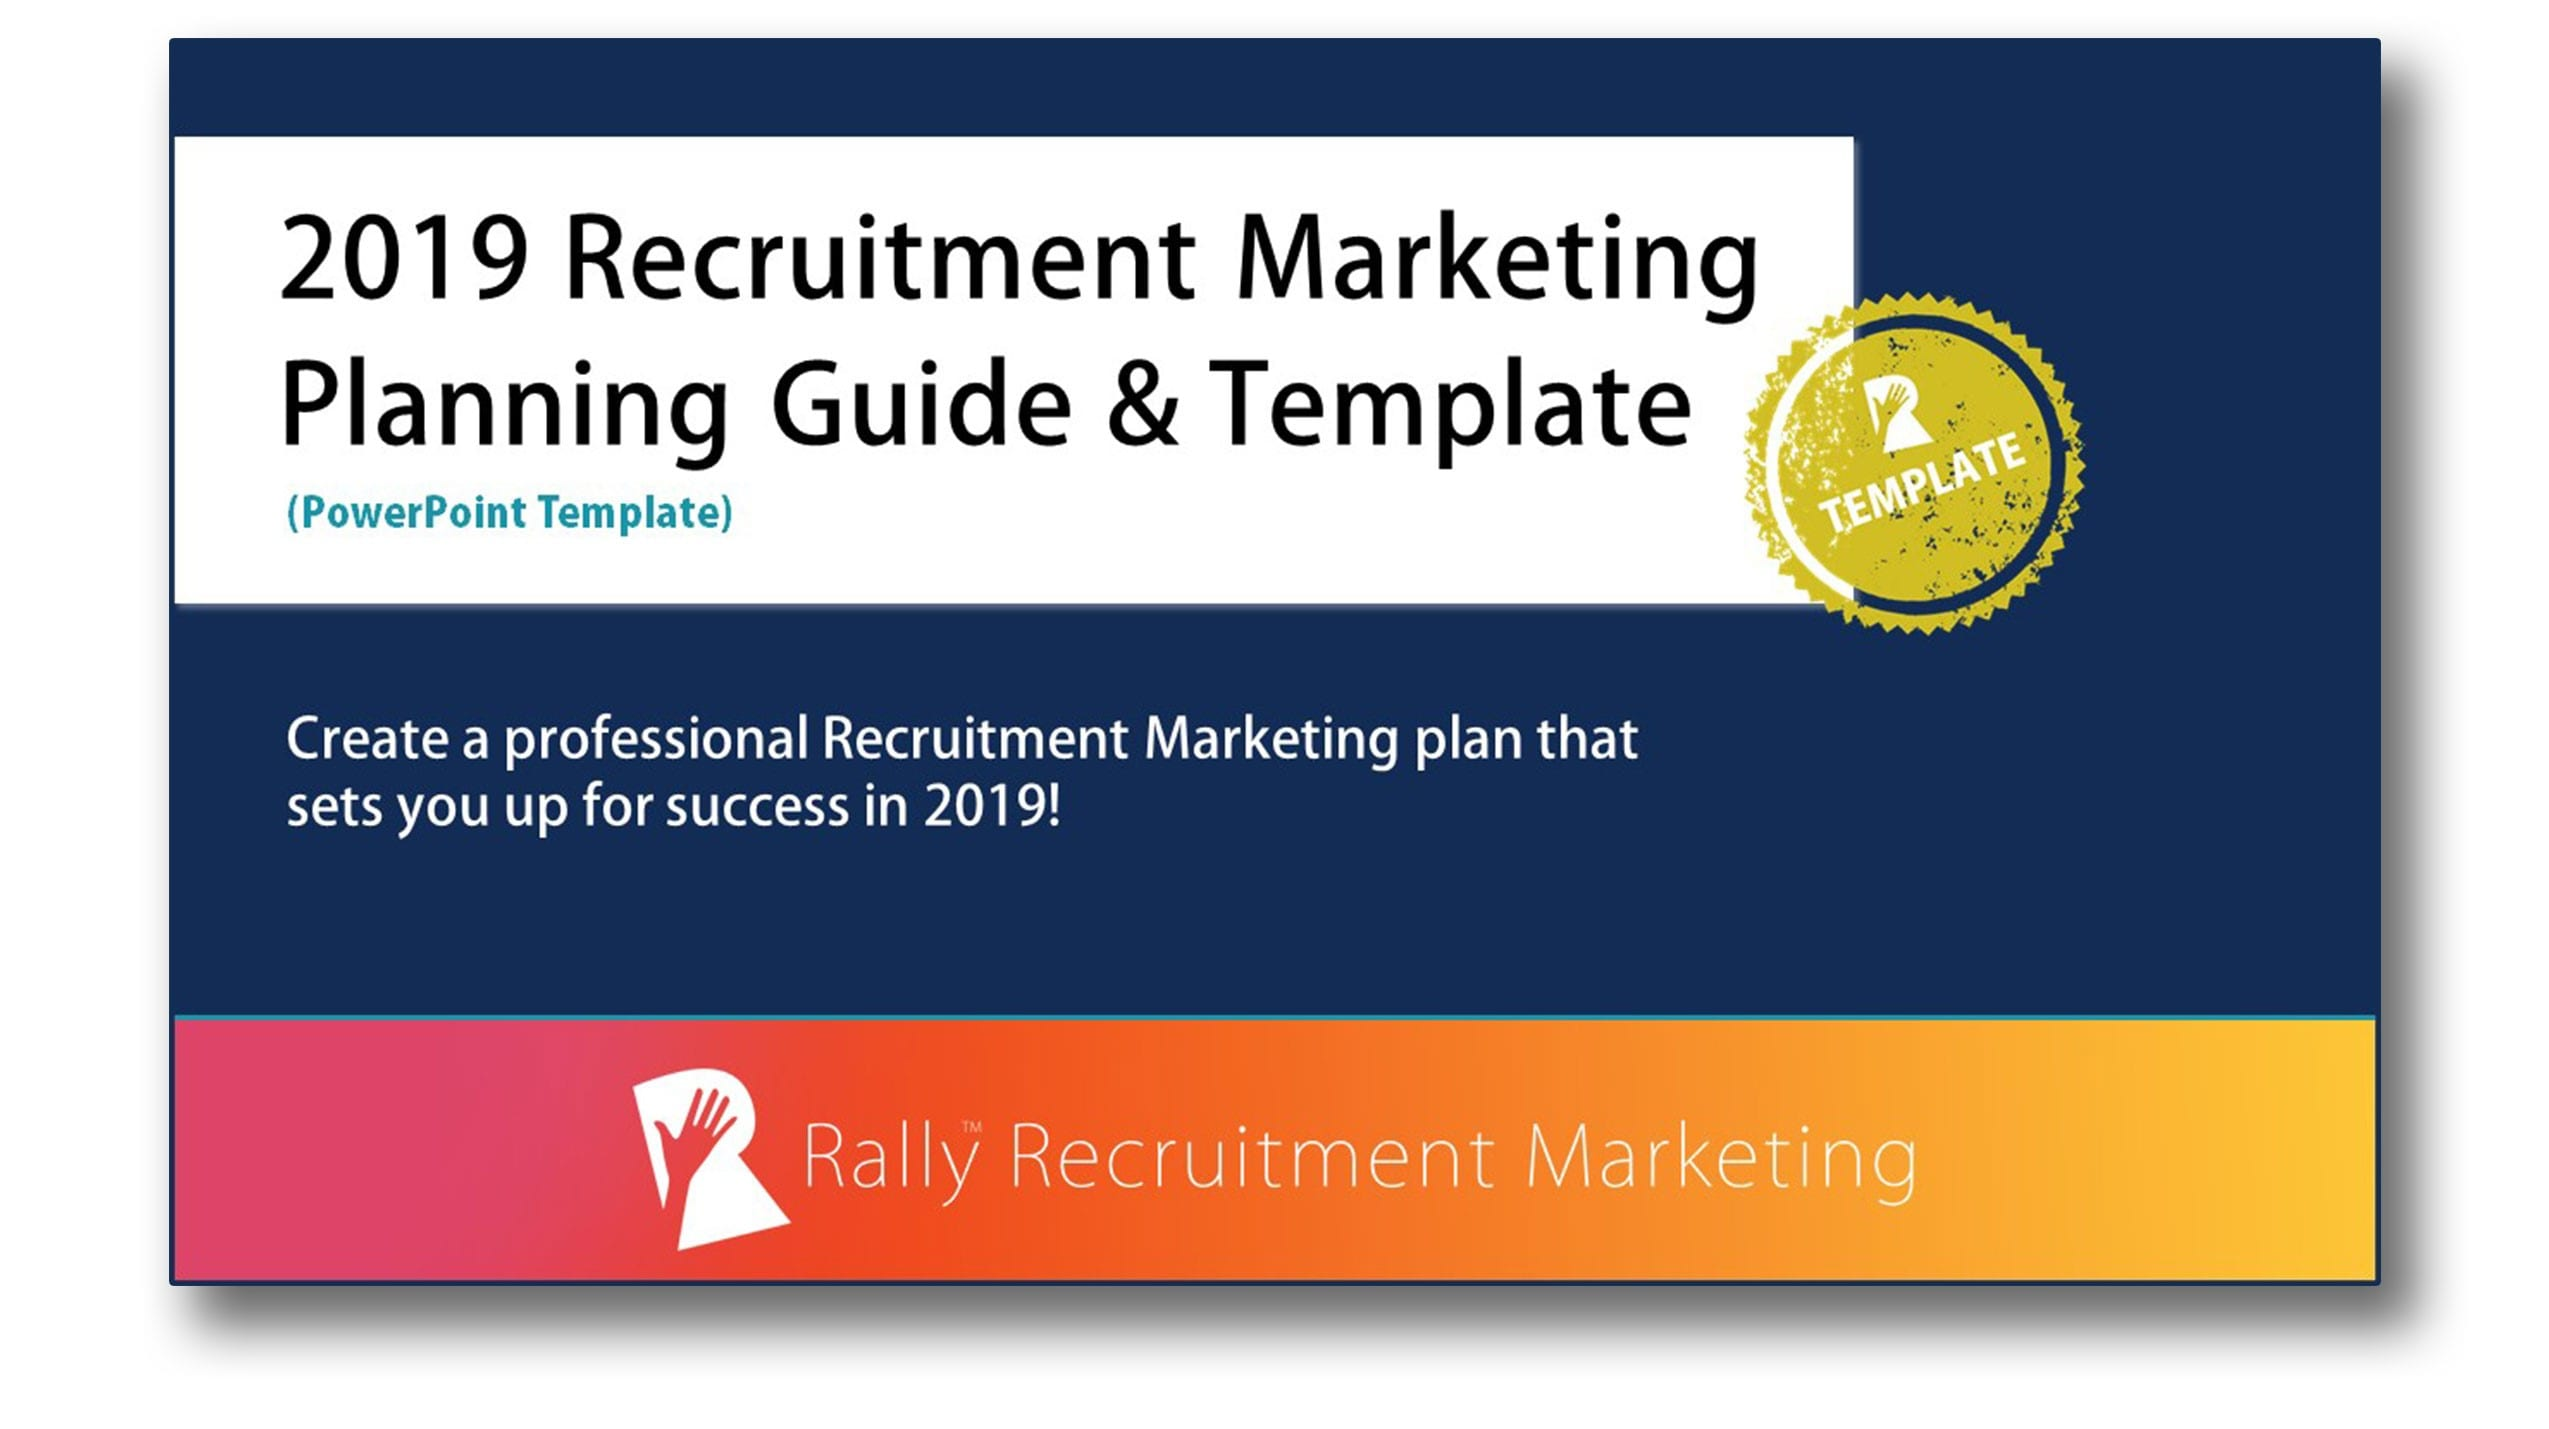 2019 Recruitment Marketing Planning Guide and Template | Rally